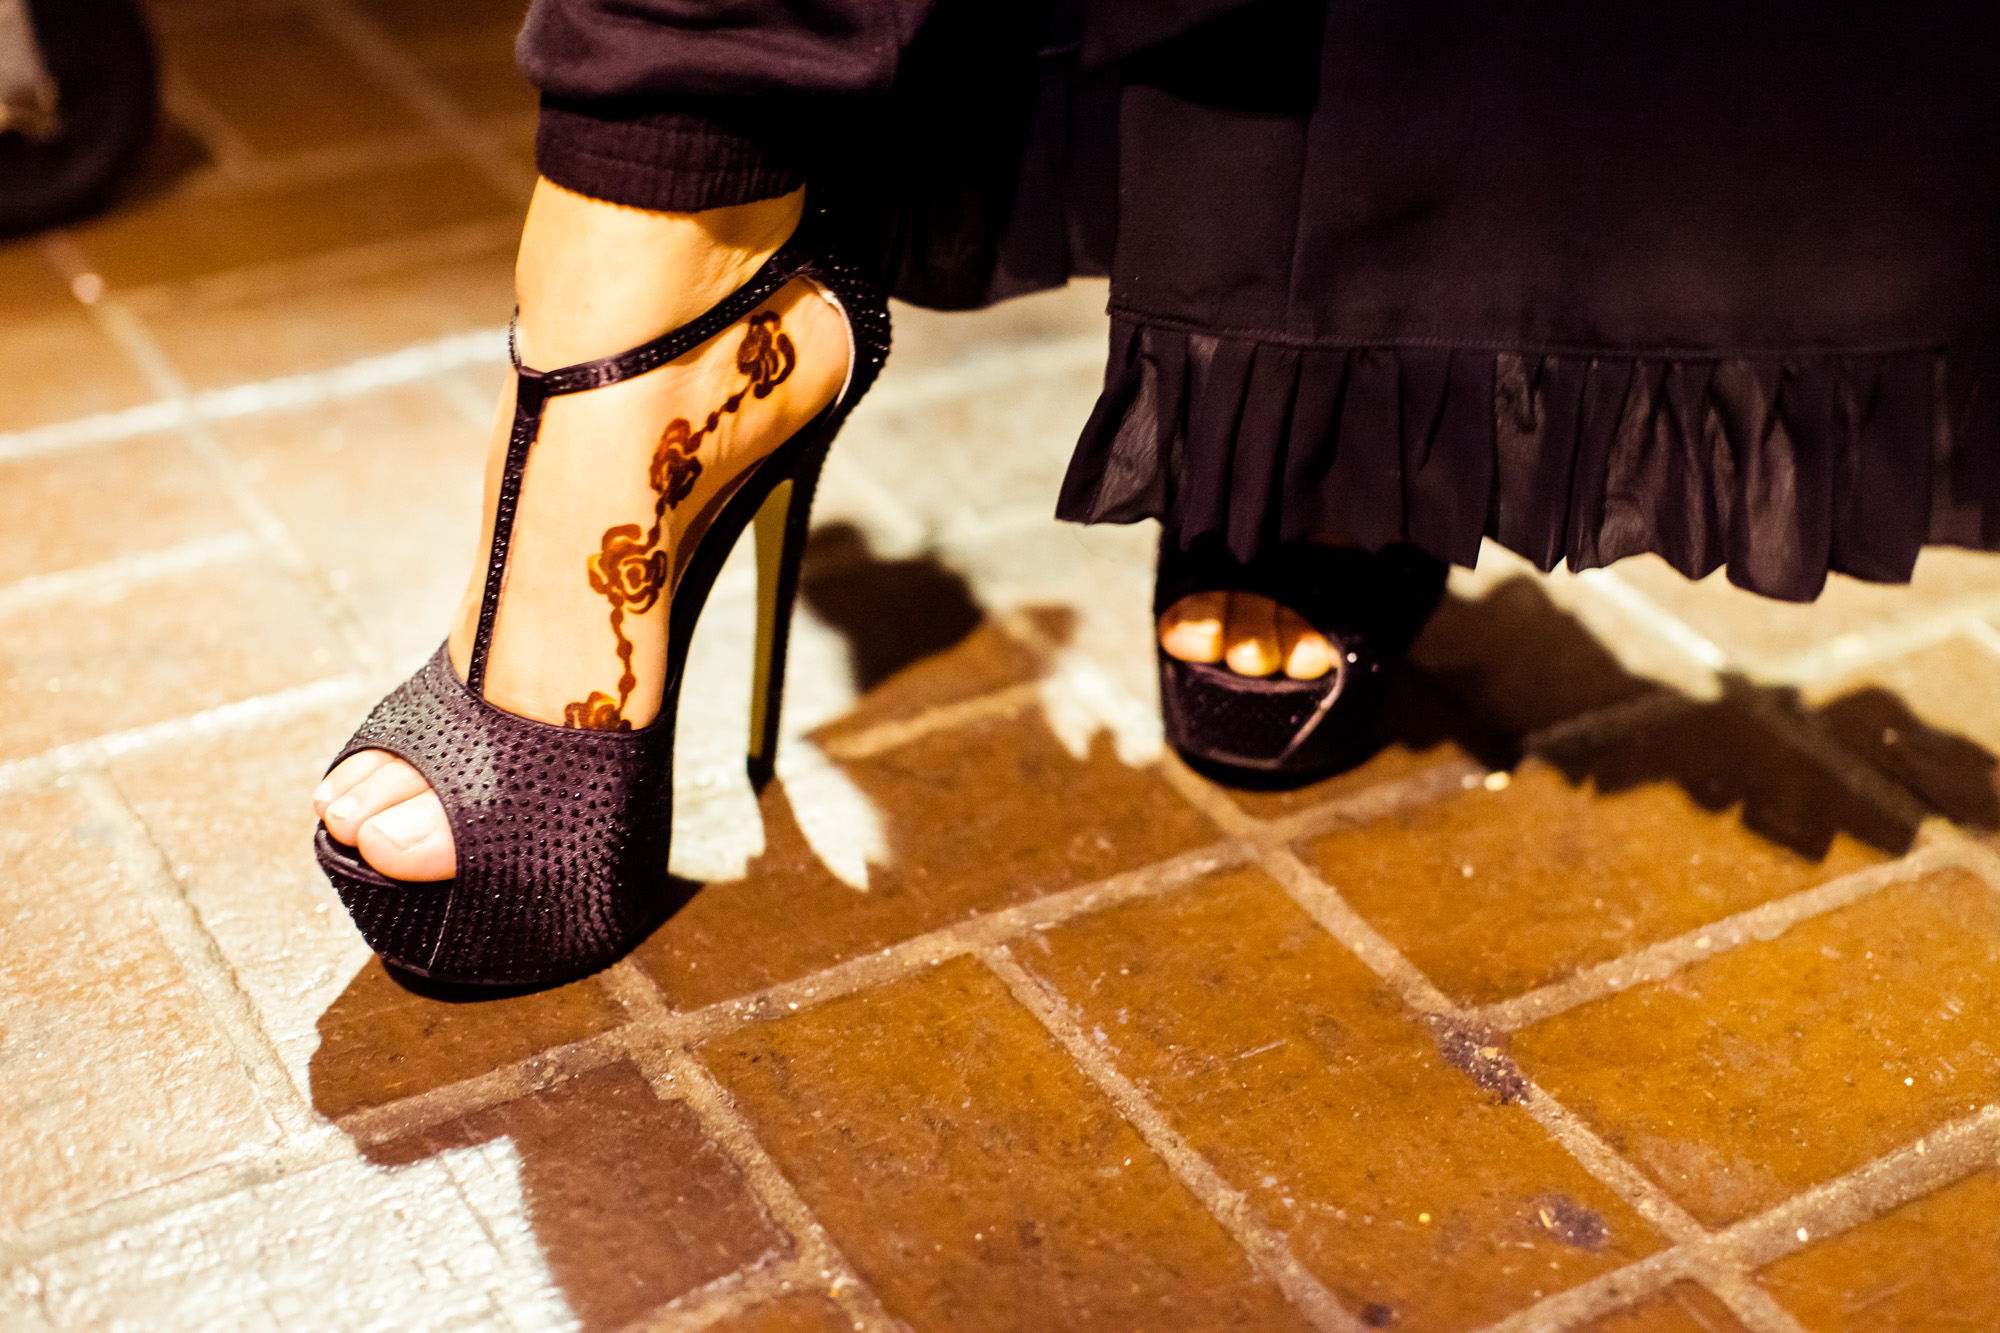 A model shows off her henna tattoo with her stilettos backstage at the RAHMA fashion show in Washington, DC.